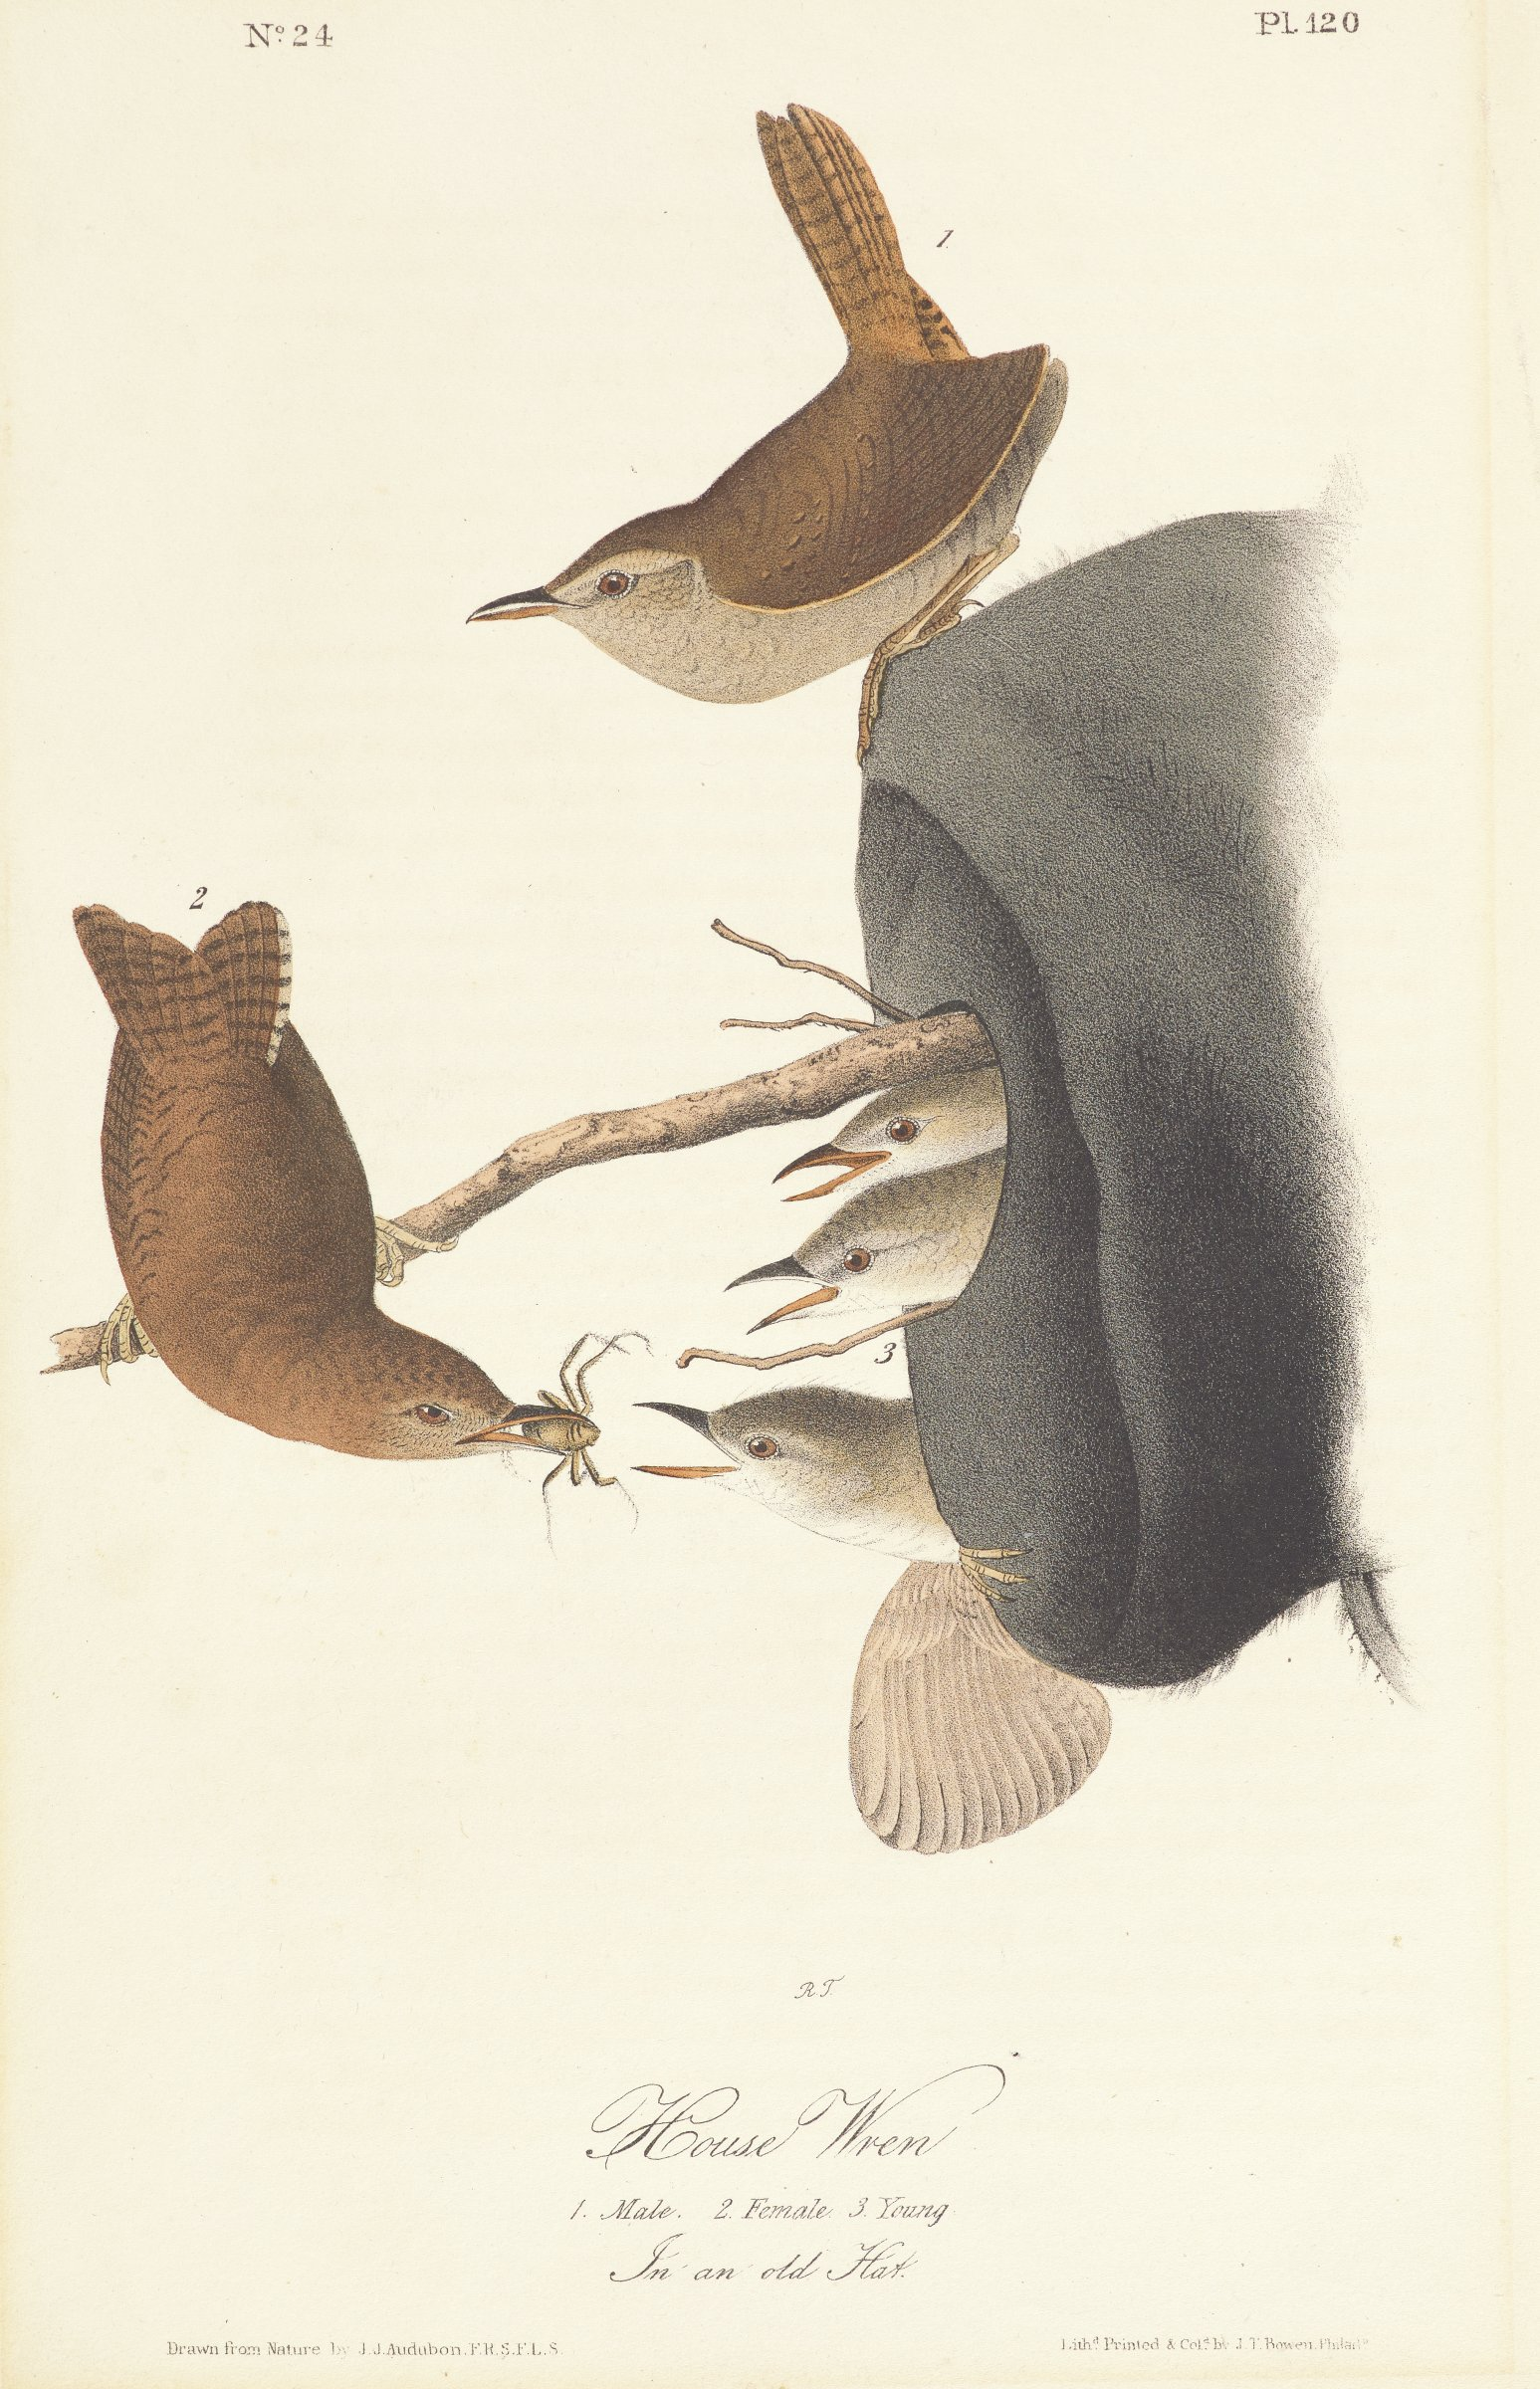 Two adult wrens are depicted with brown feathers on their topside and cream feathers on their underside. The feathers are accented with black markings. The wren on the left feeds an insect from its beak to three young wrens that are covered in white feathers with black markings.The young wrens pop their heads out of an opening on a black hat, which is being used as a nest.